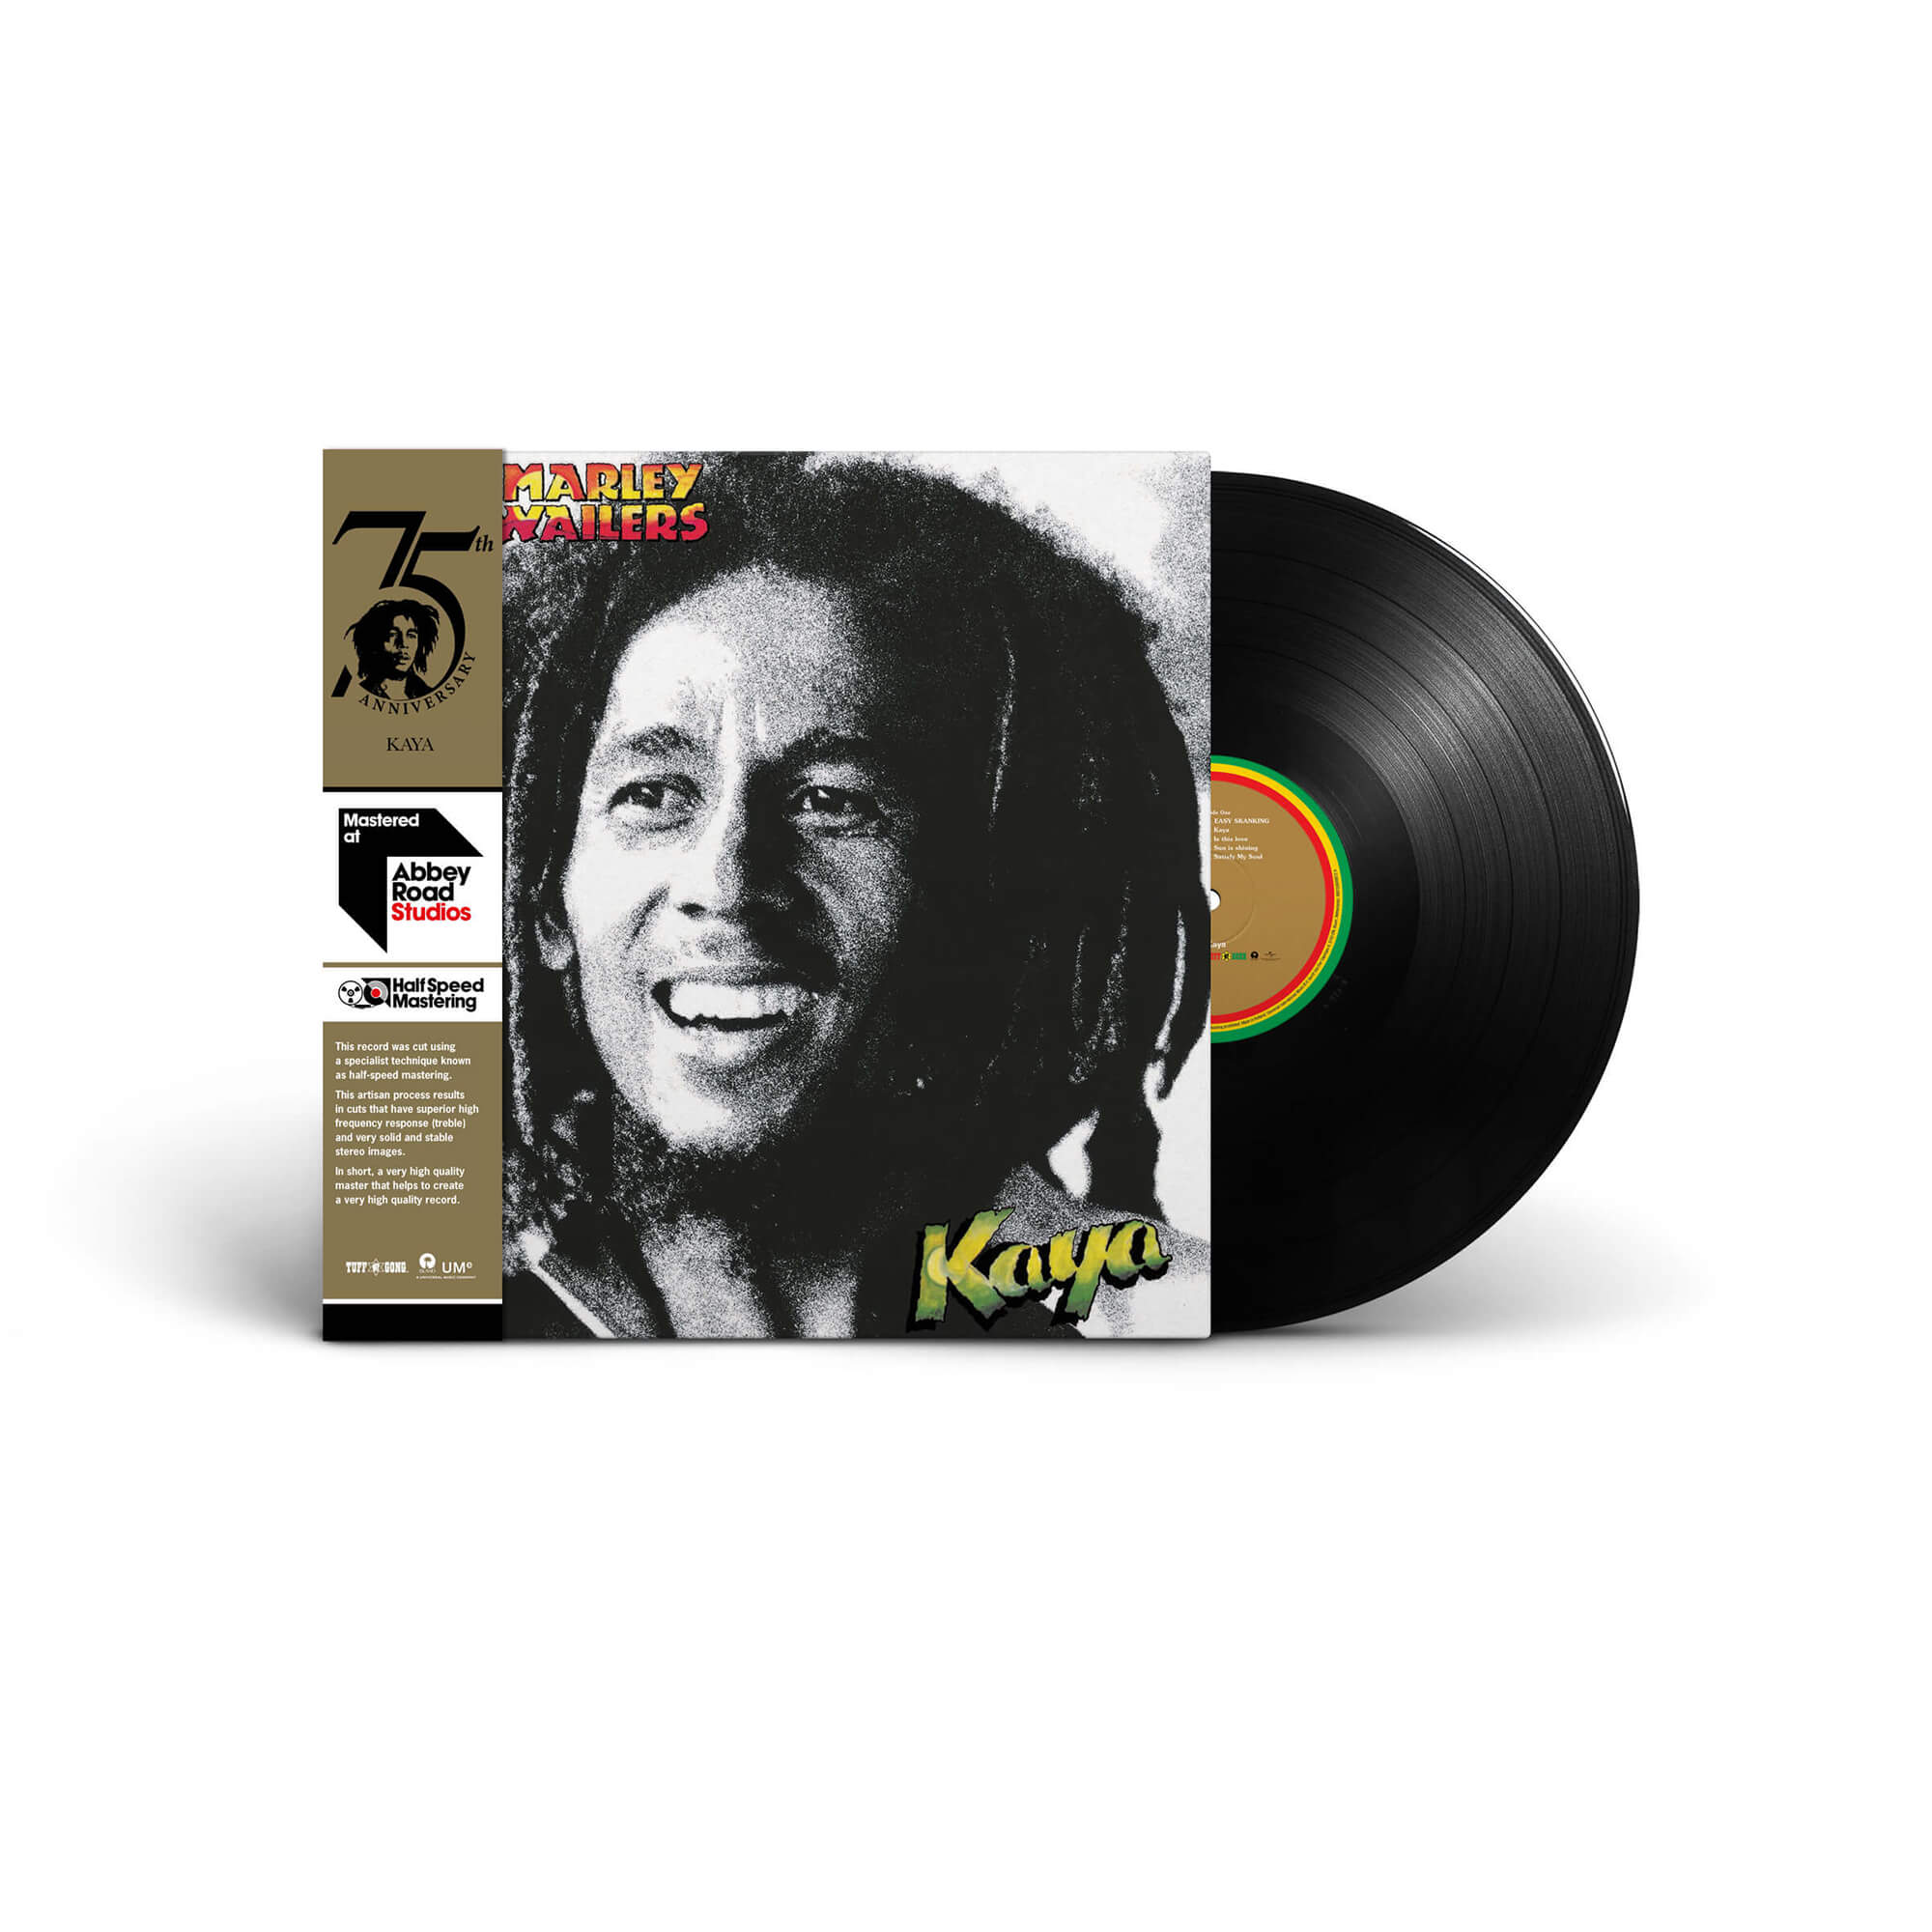 Bob Marley - Ltd. Jamaican Vinyl Pressings, Ltd. Half-Speed Masters